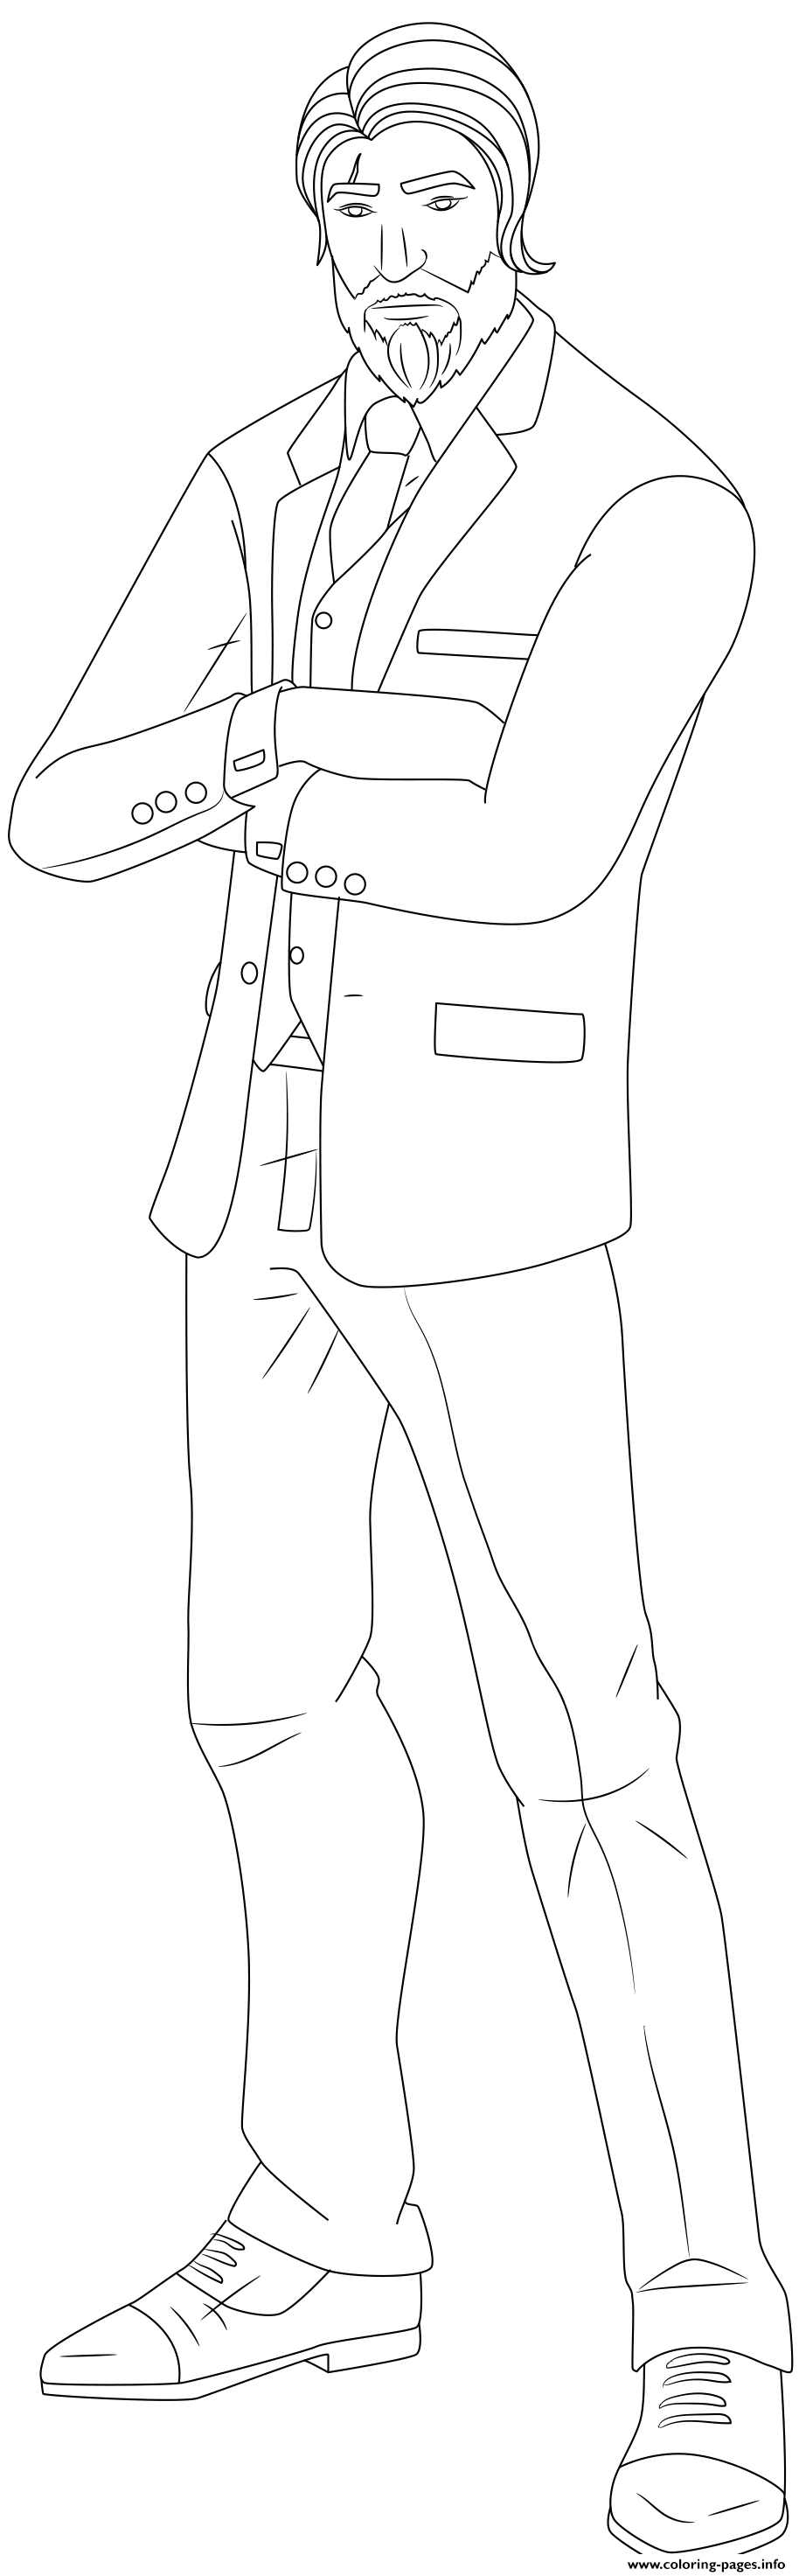 The Reaper Fortnite Skin Hd coloring pages